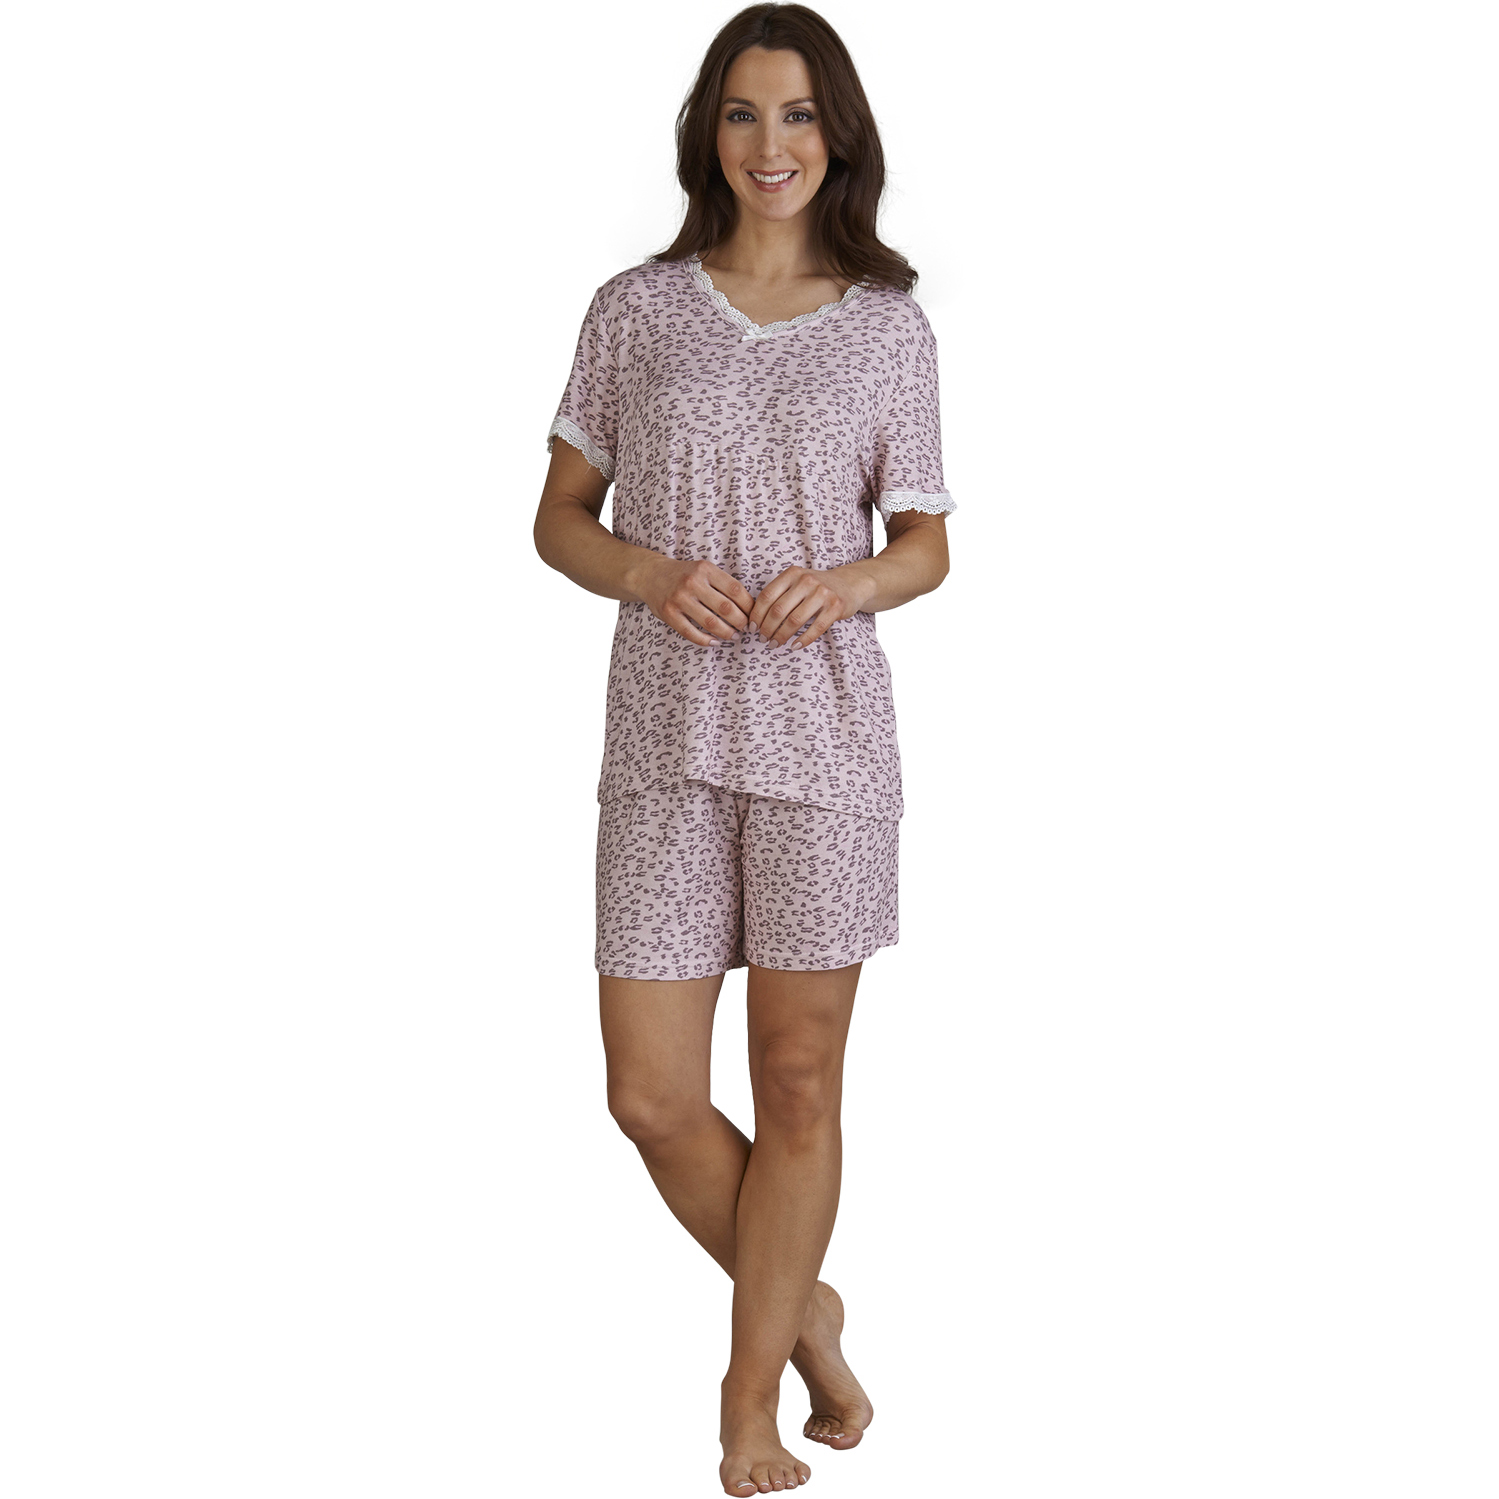 Lands' End is a classic American lifestyle brand with a passion for quality, legendary service & real value. We seek to deliver timeless style for women, men, kids and the home. Shop lasting quality women's swimsuits, men's dress pants & kids polo shirts, jeans, dresses, shoes, home décor & more. Free Shipping on $50+.